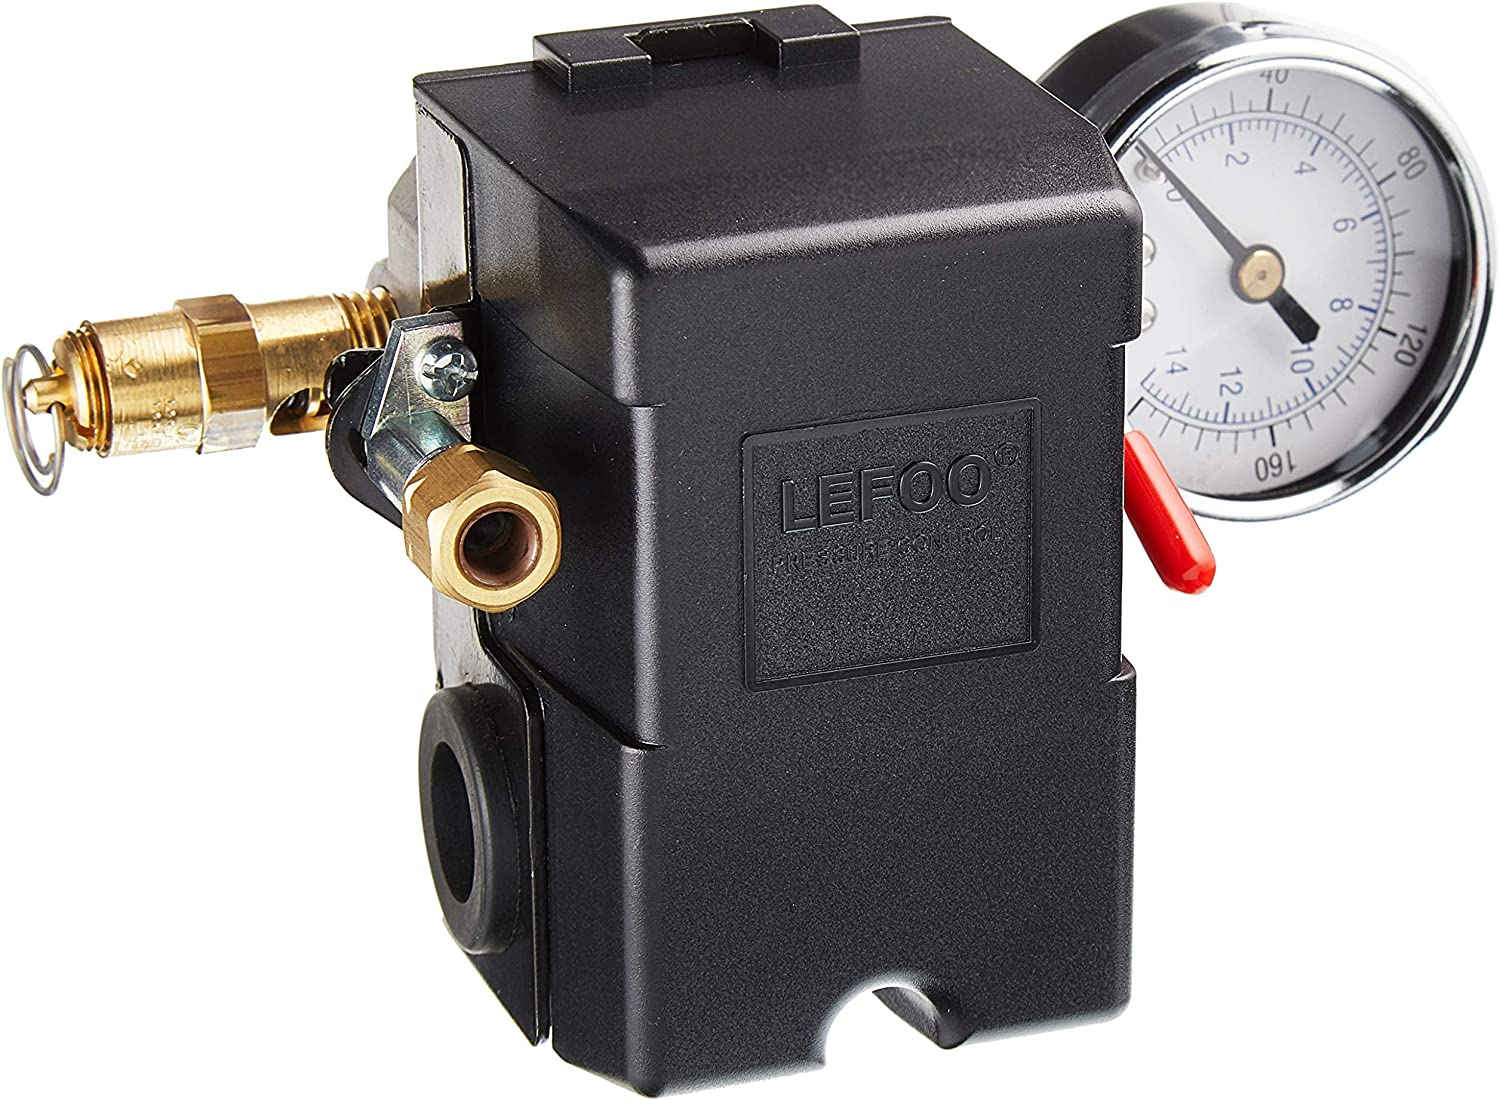 26 2021 new Attention brand AMP H D PRESSURE SWITCH AIR 4 COMPRESSOR 0-200 145-175 w PORT